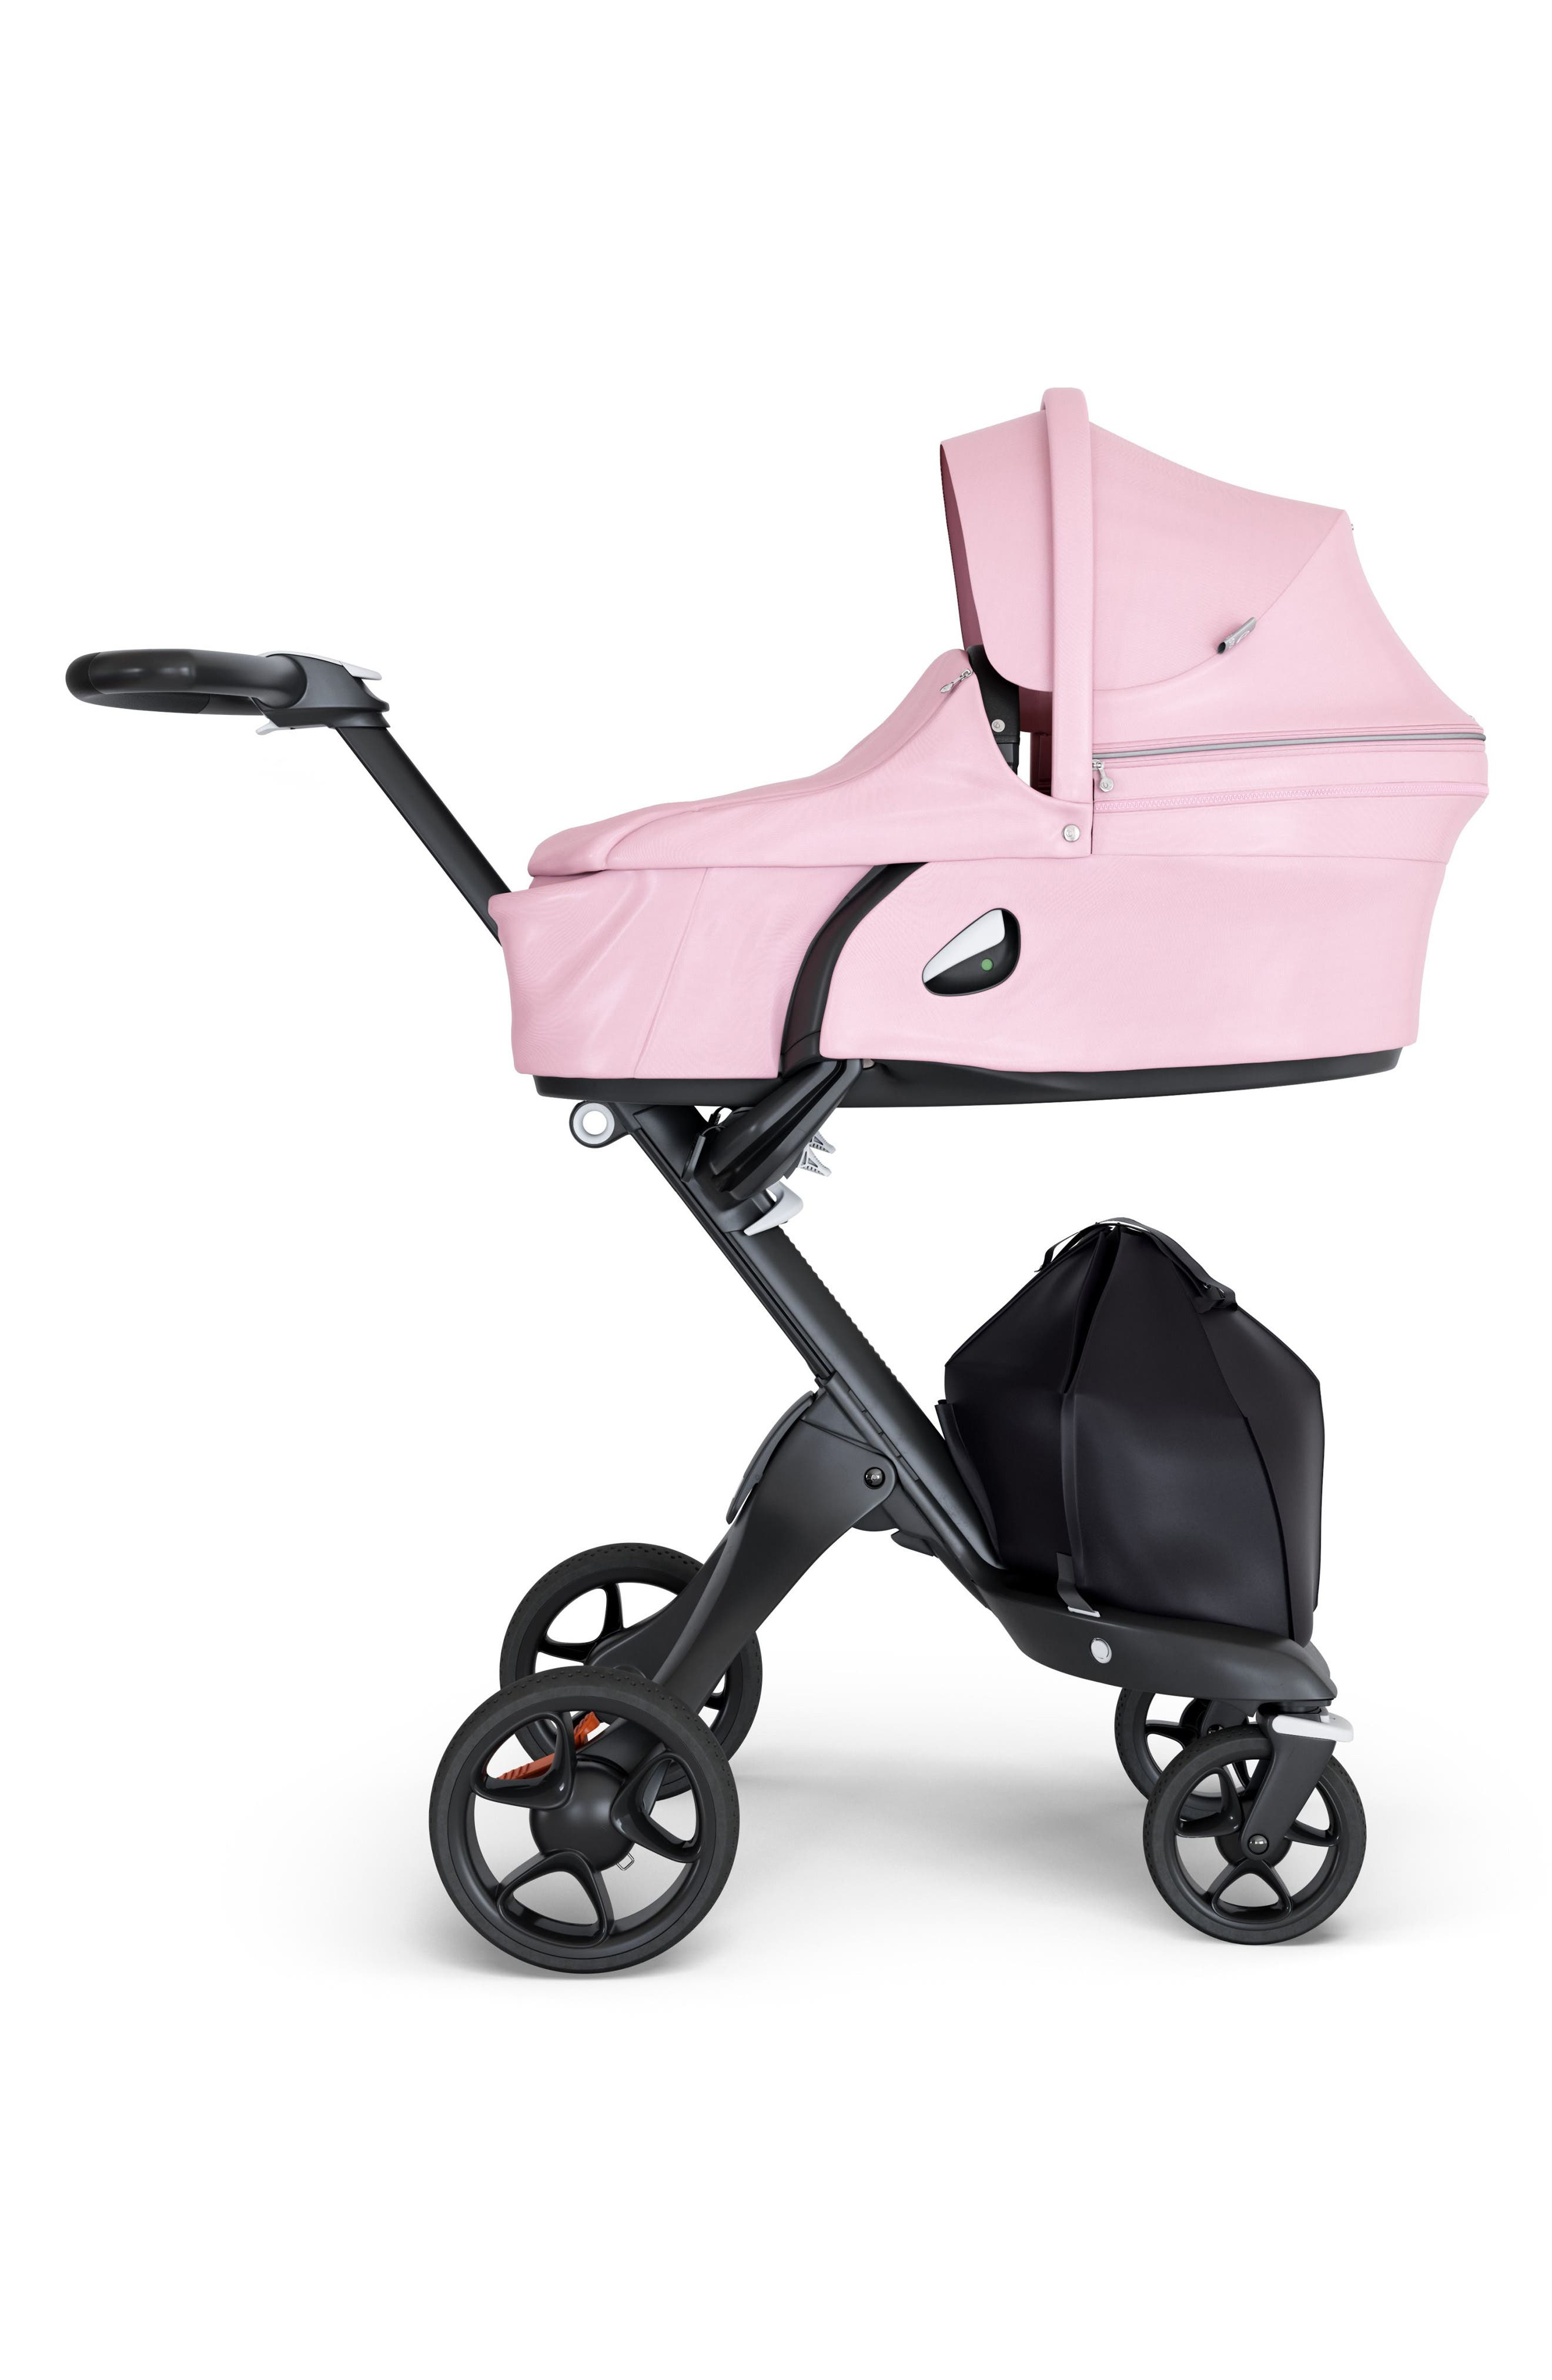 Alternate Image 1 Selected - Stokke Xplory® Carry Cot Attachment